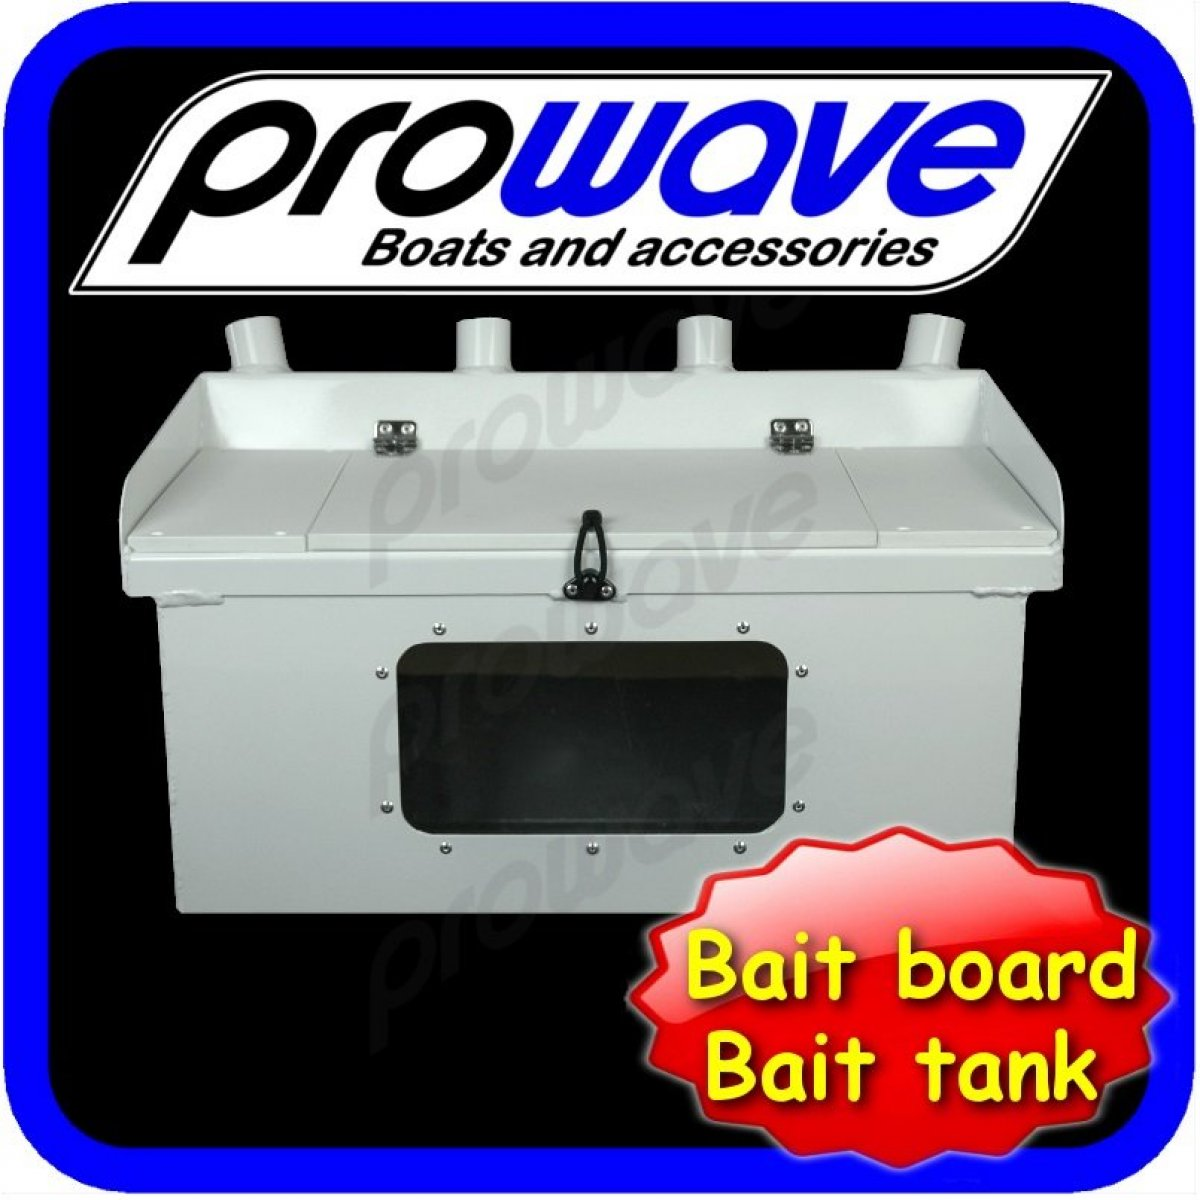 Bait board with bait tank, and rod holders 700w